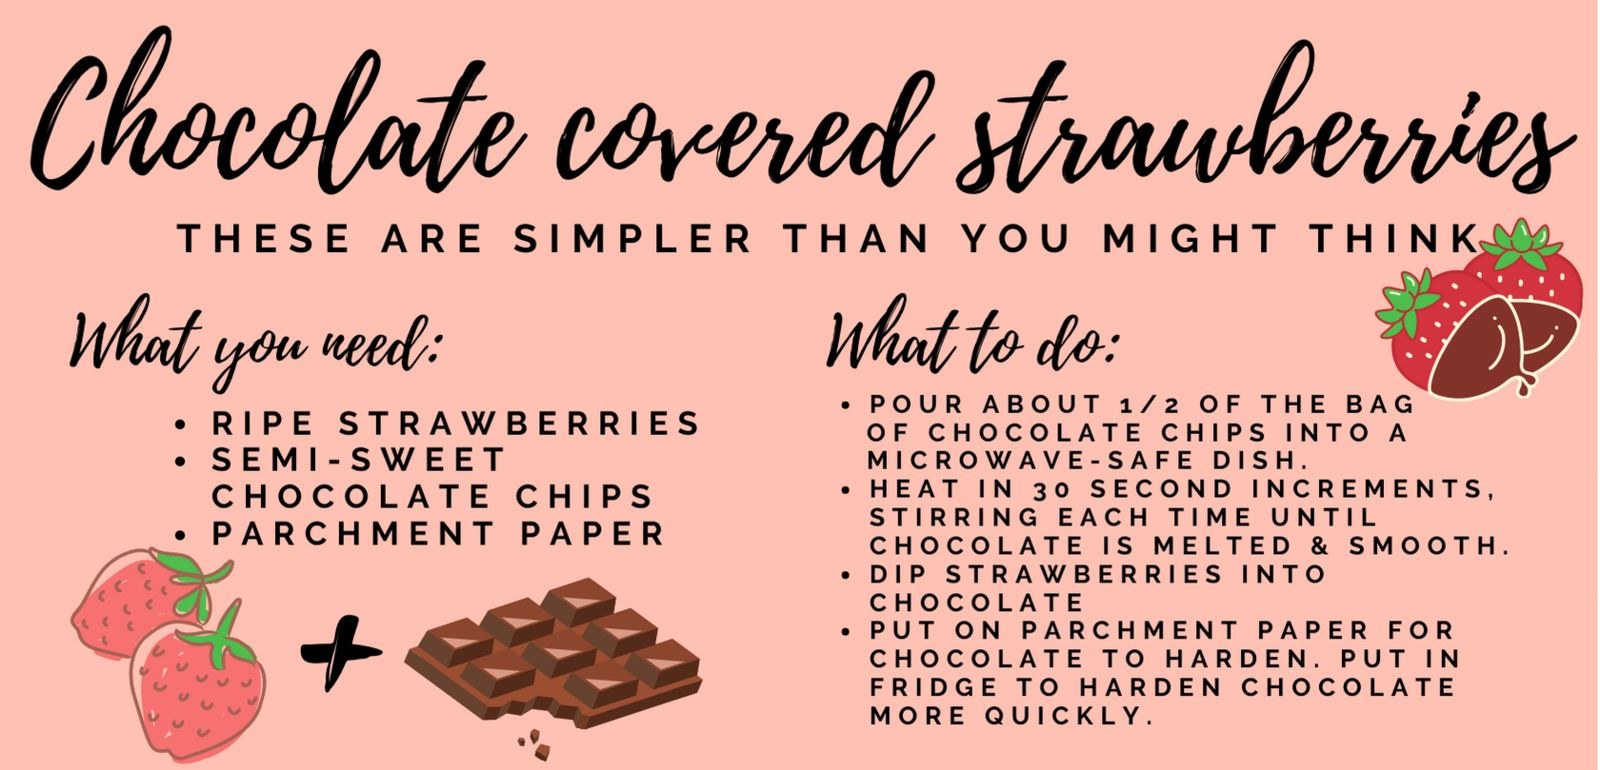 At home valentines day chocolate covered strawberry recipe for safe South Florida Valentine's date at home